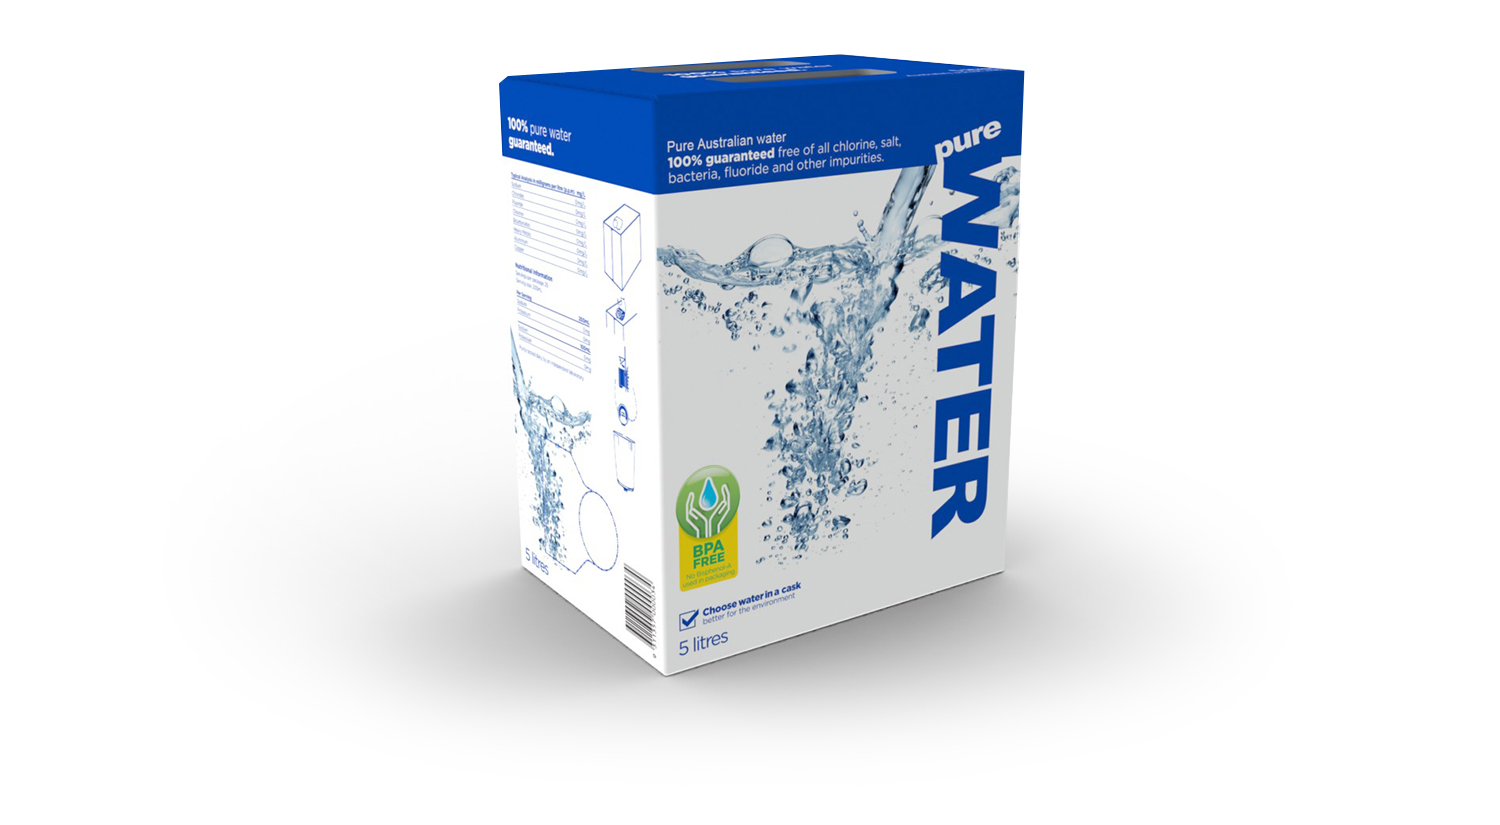 Beverage packaging - after first para with other images3.jpg